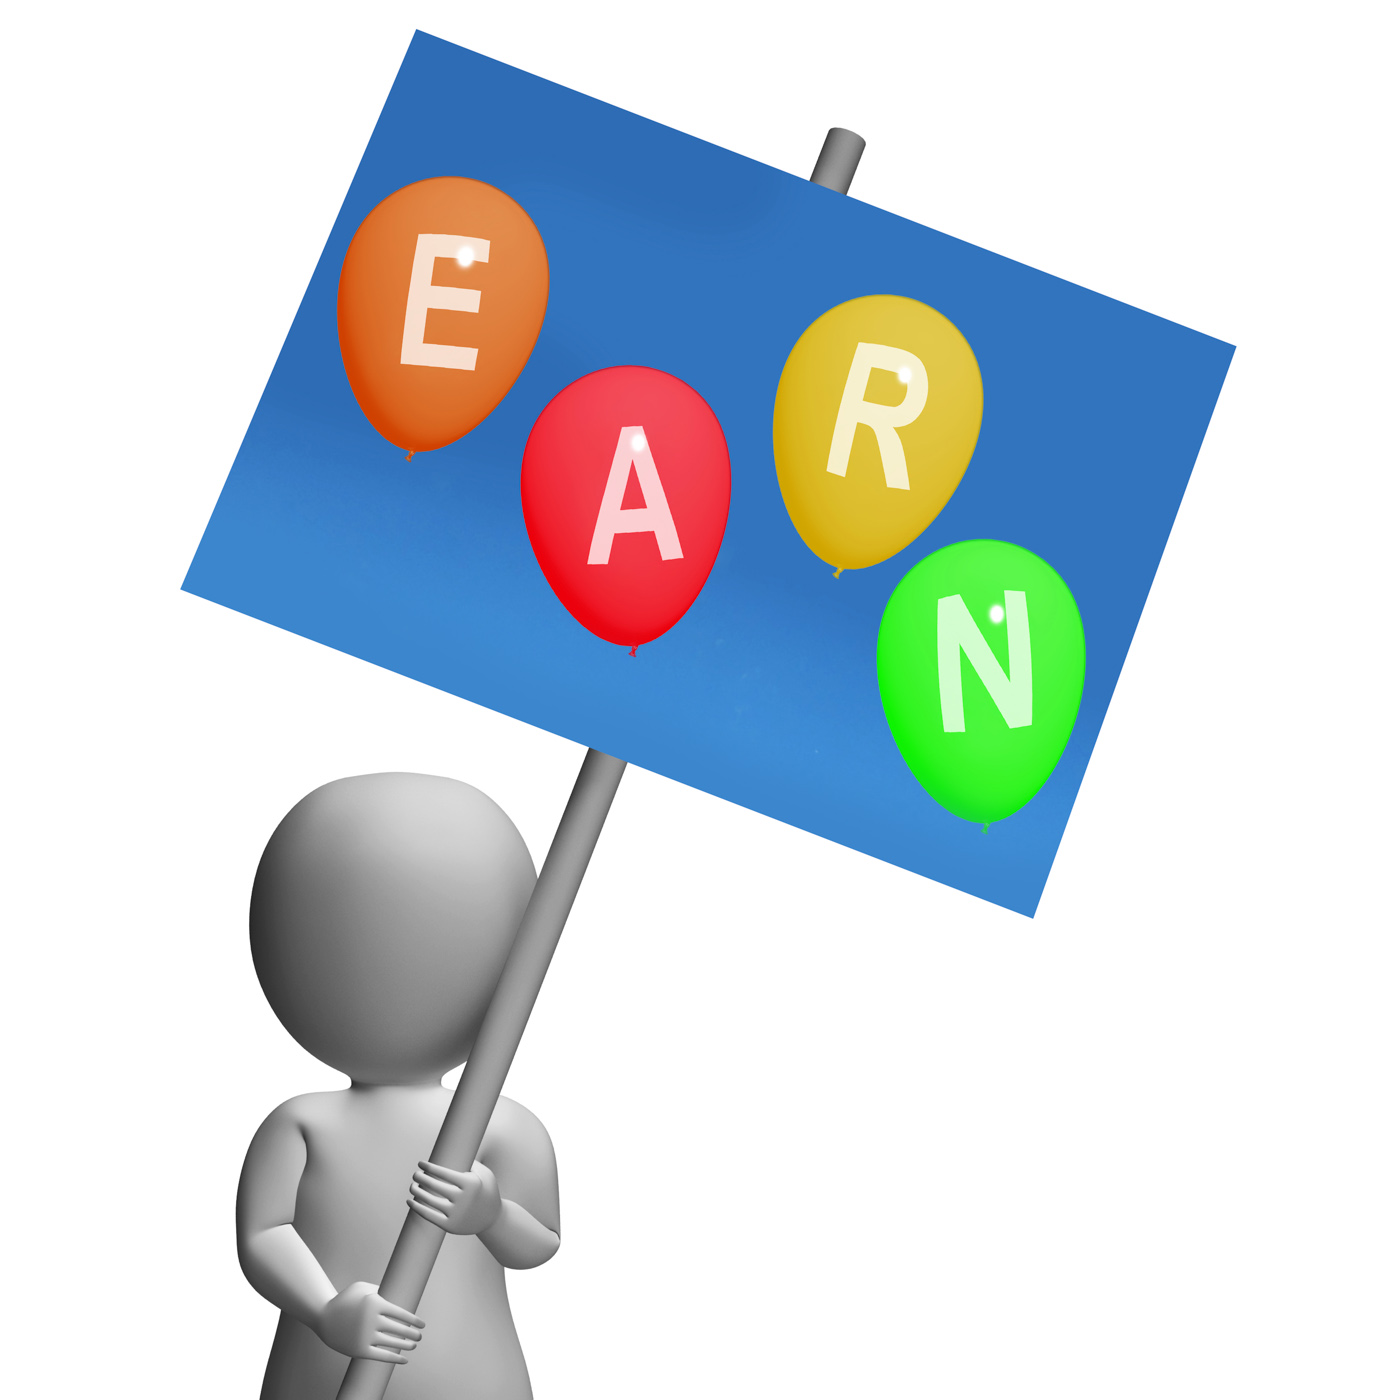 Sign earn balloons show online earnings promotions opportunities and s photo